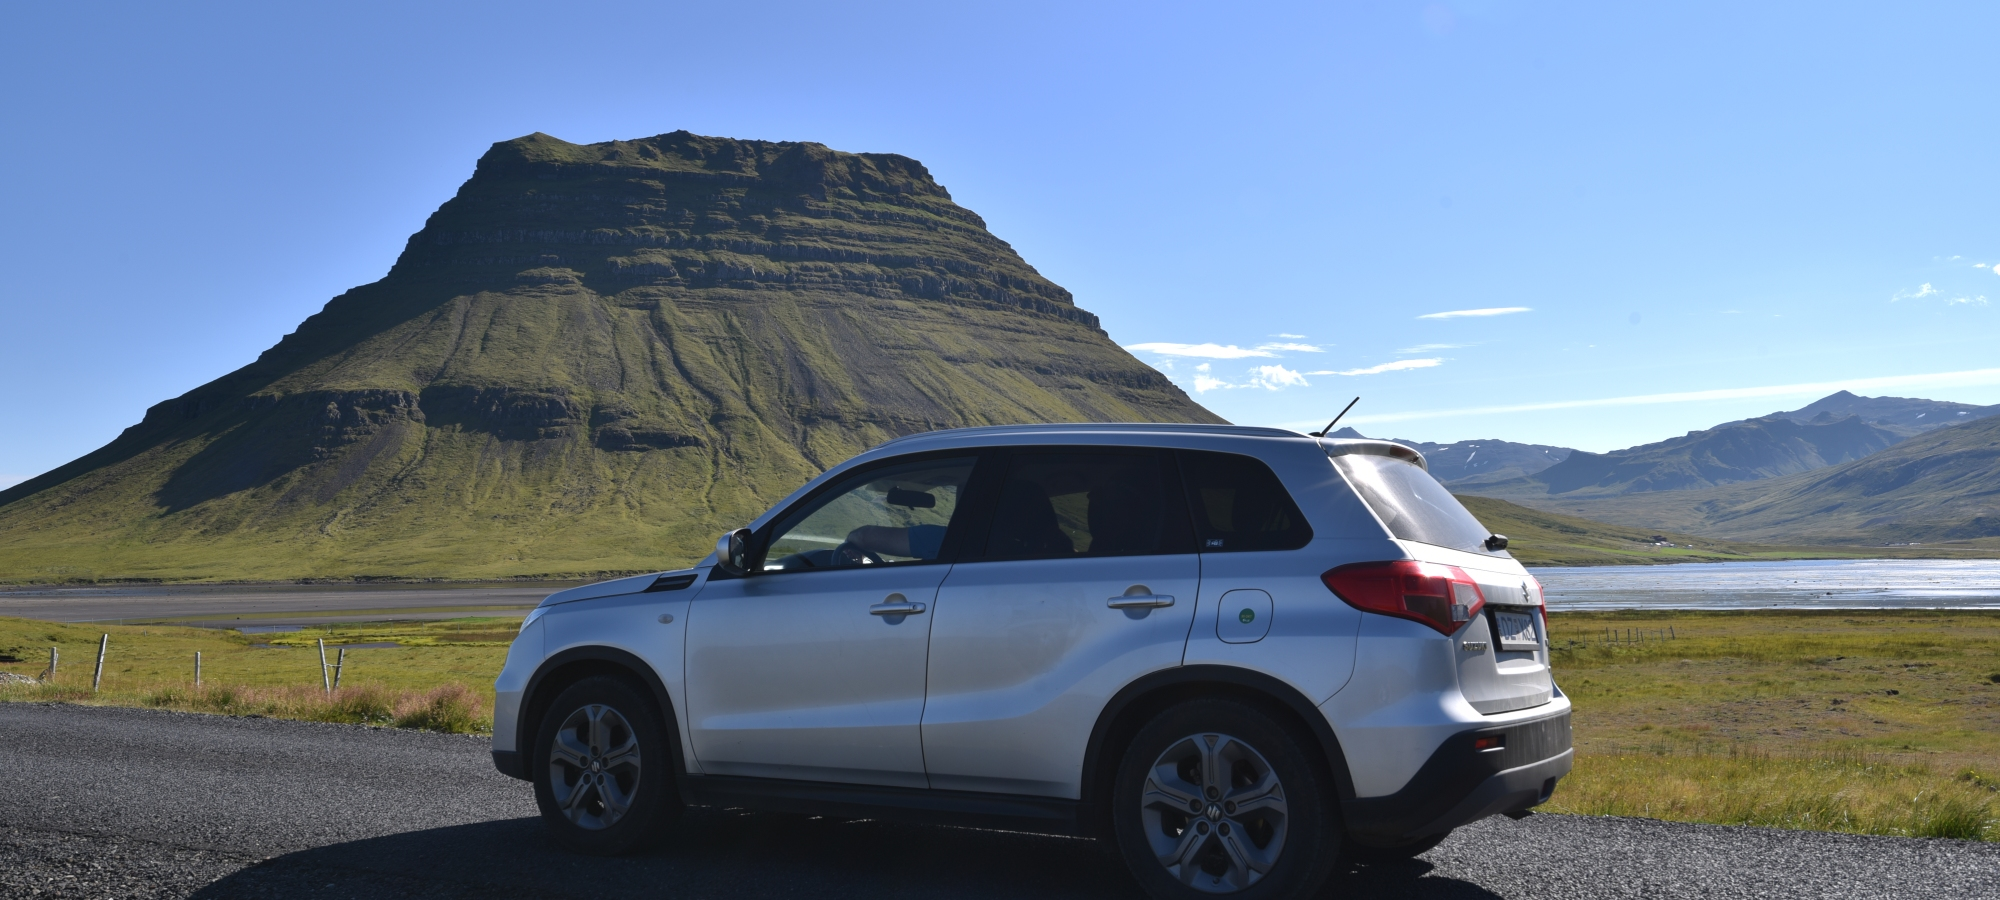 rental car from blue car rental Iceland with kirkjufell in the background